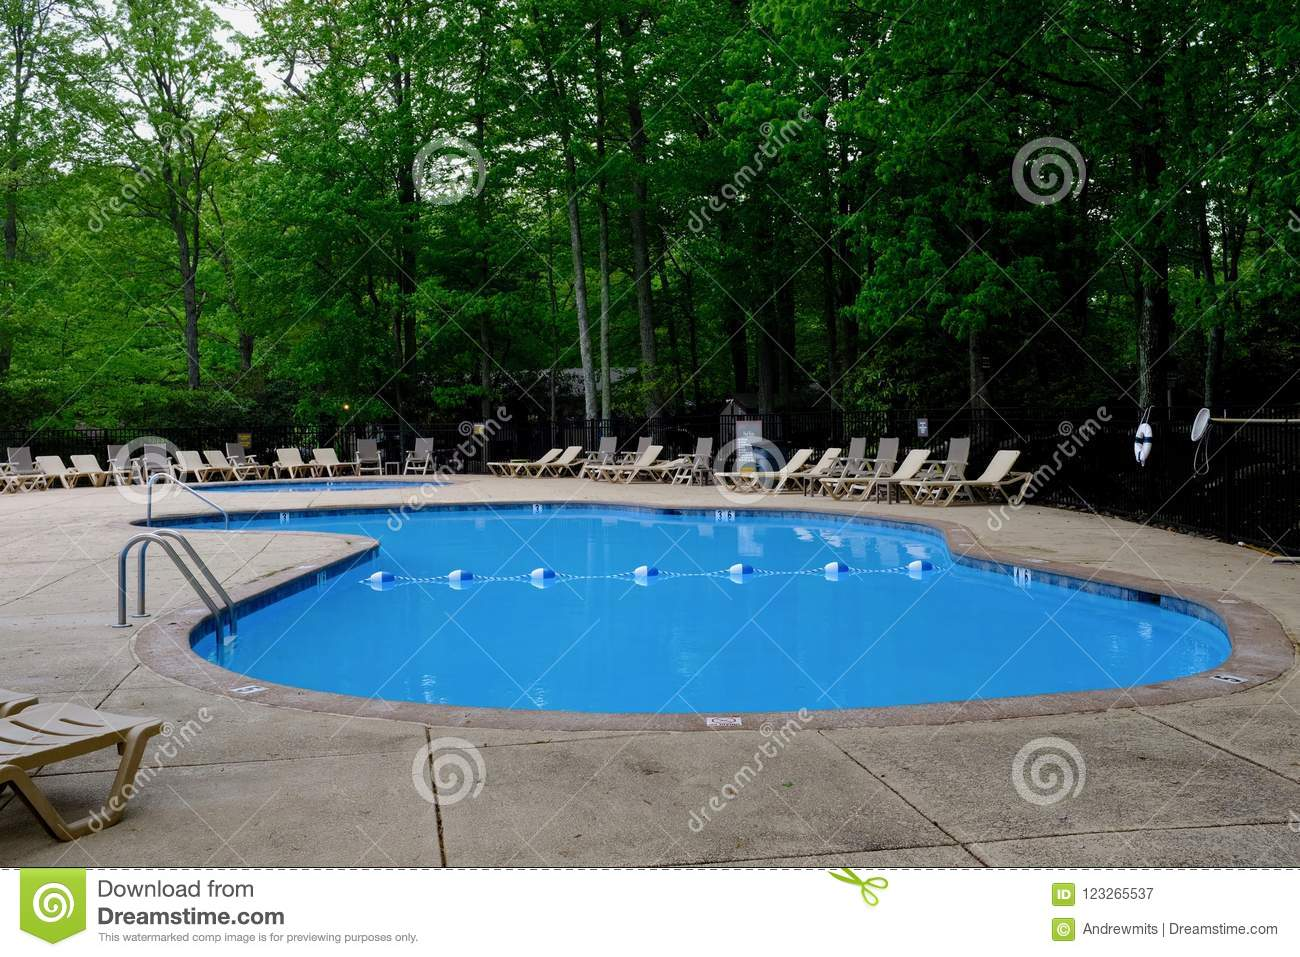 Outdoor Natural Gas Fire Pit Table, Pool Deck And Lounge Chairs In Green Forest Stock Image Image Of Blue Water 123265537